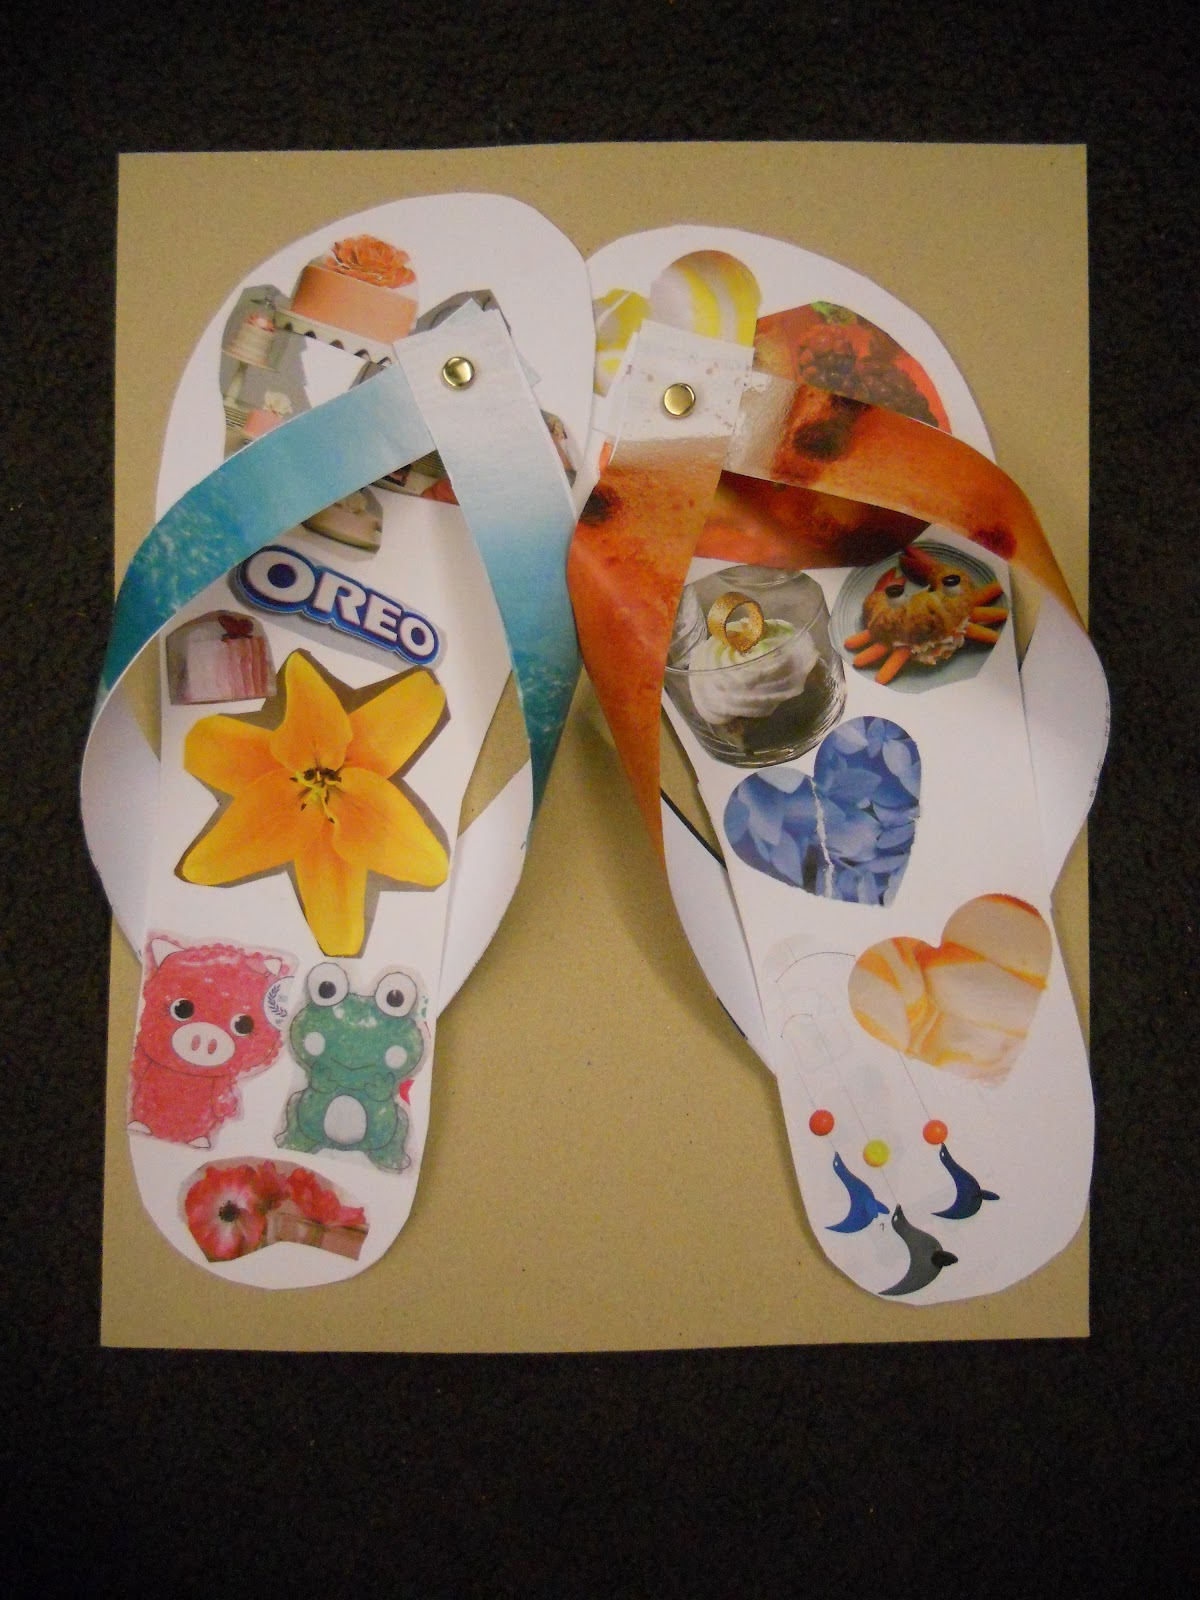 Create art with mrs p dollar store flip flop collage craft lastly we hot glued our flip flops to a piece of sandpaper a pack of 12 is 1 at the dollar store to make our flip flops on a sandy beach so fun publicscrutiny Image collections